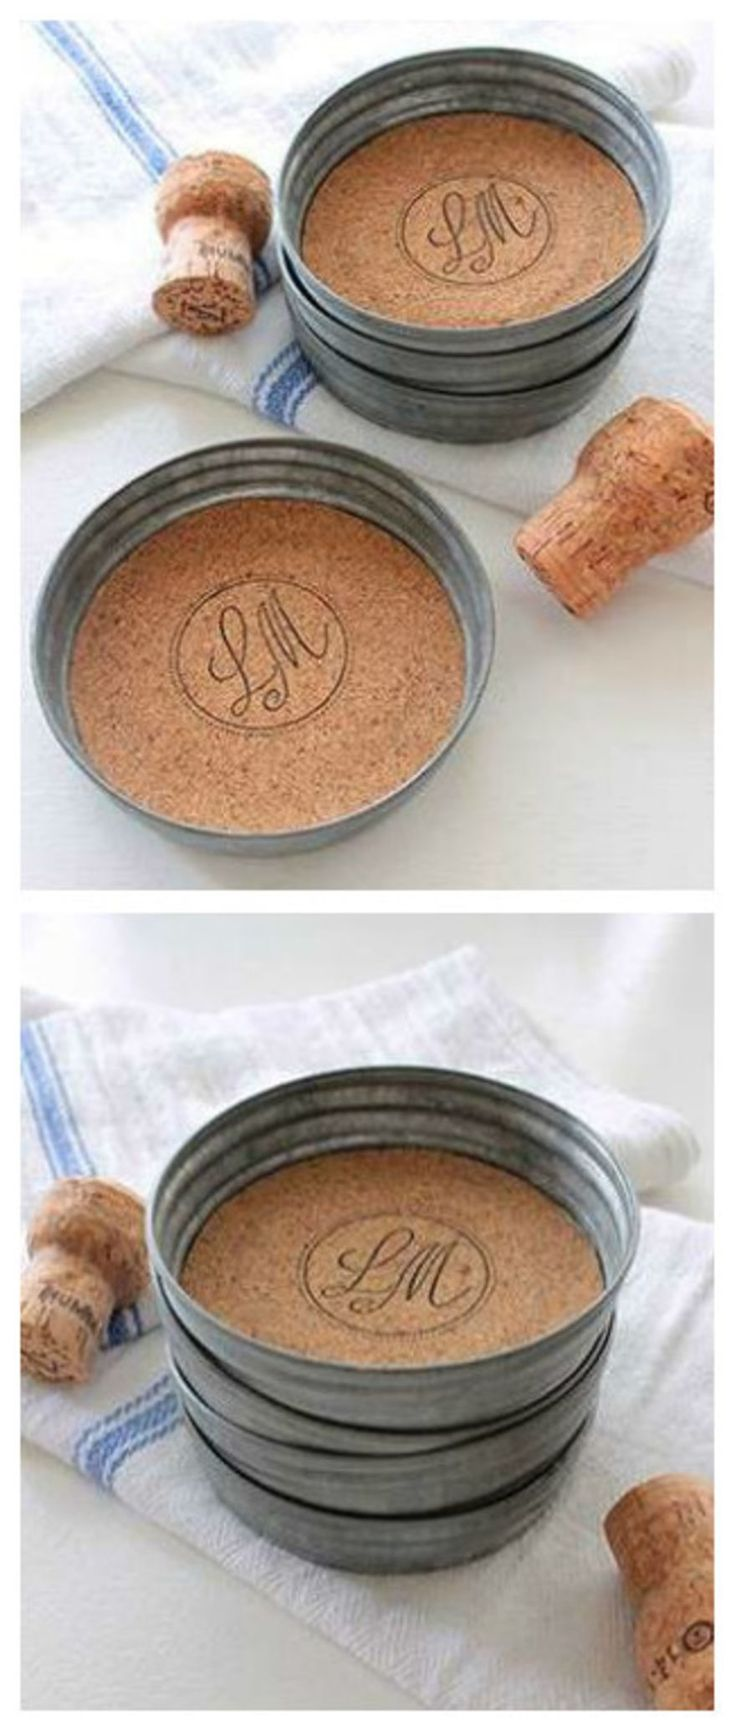 Craft containers with lids - Find This Pin And More On Craft Ideas